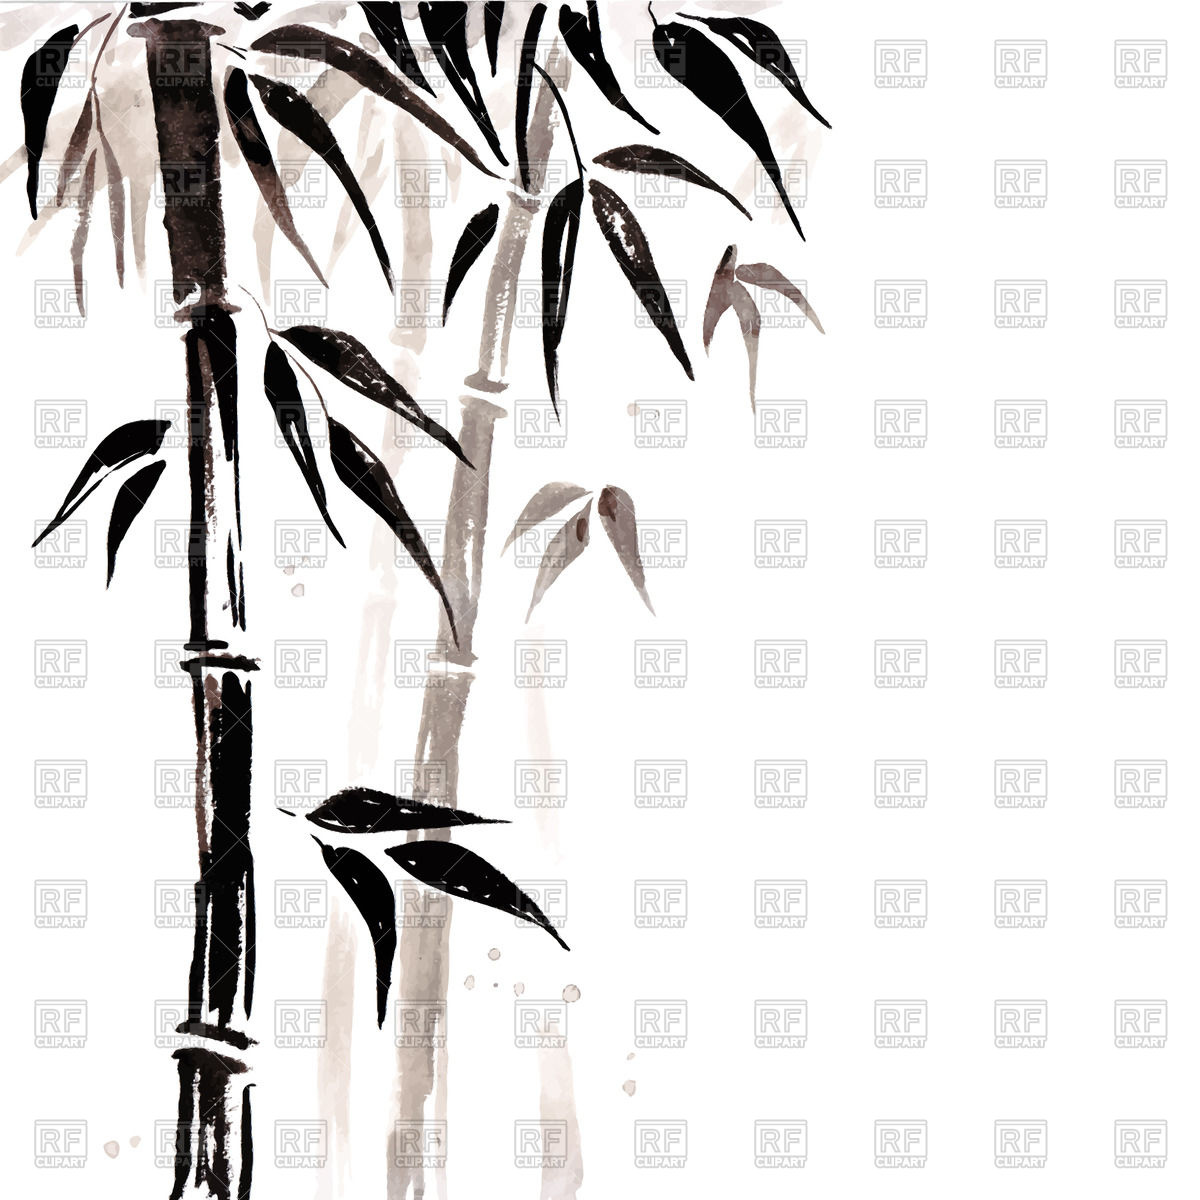 Chinese paiting clipart - Clipground